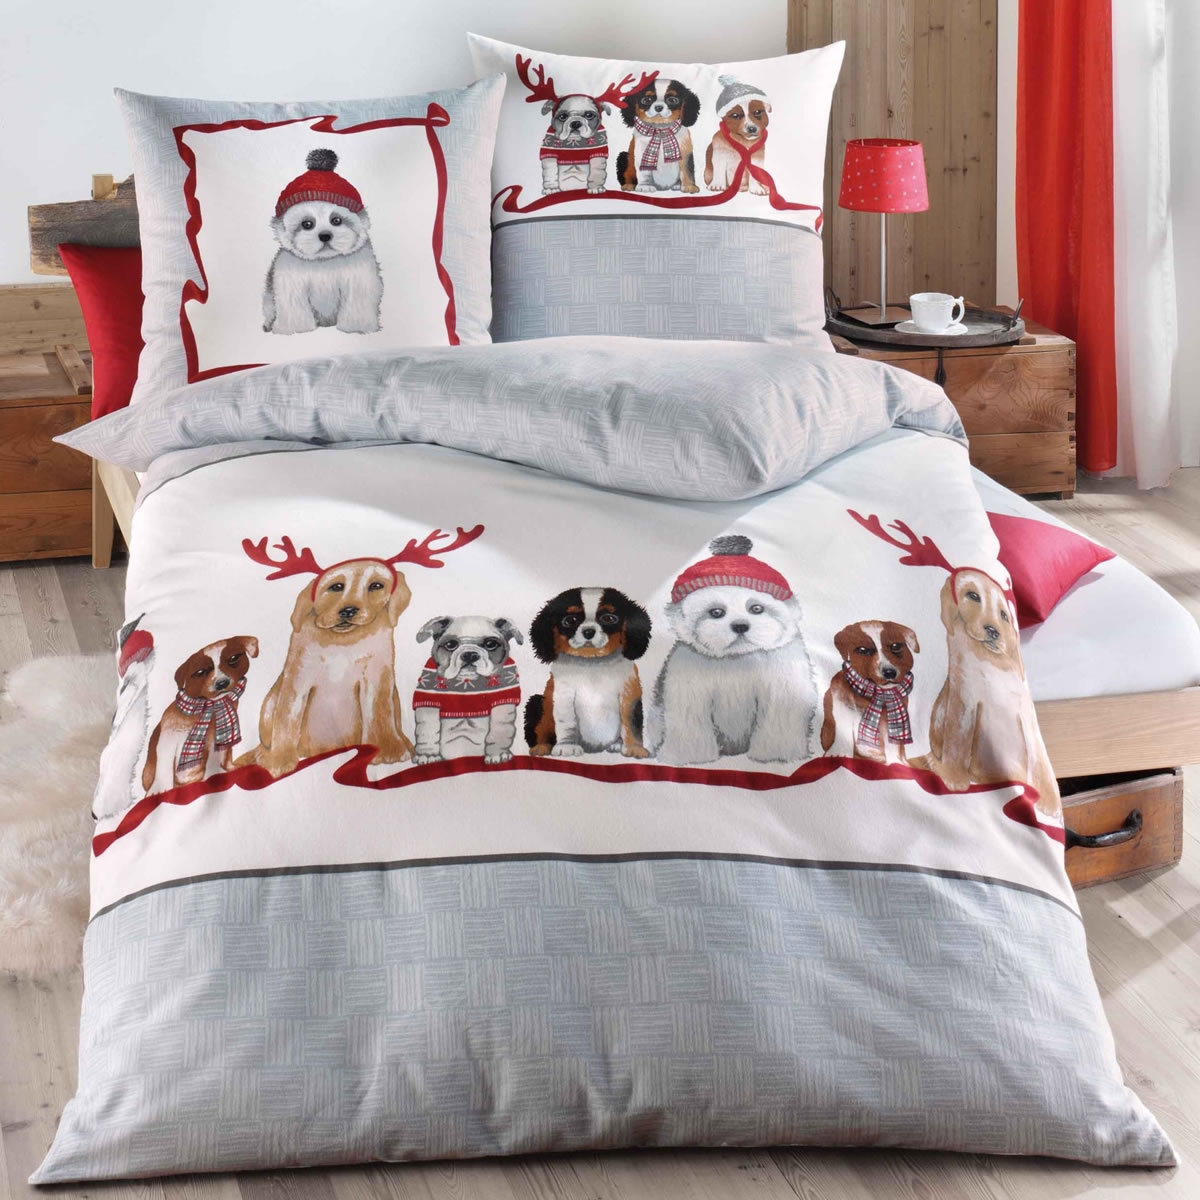 Kaeppel Biber Bettwäsche 155x220 Cm Design 76669 Dogs Grau Winter